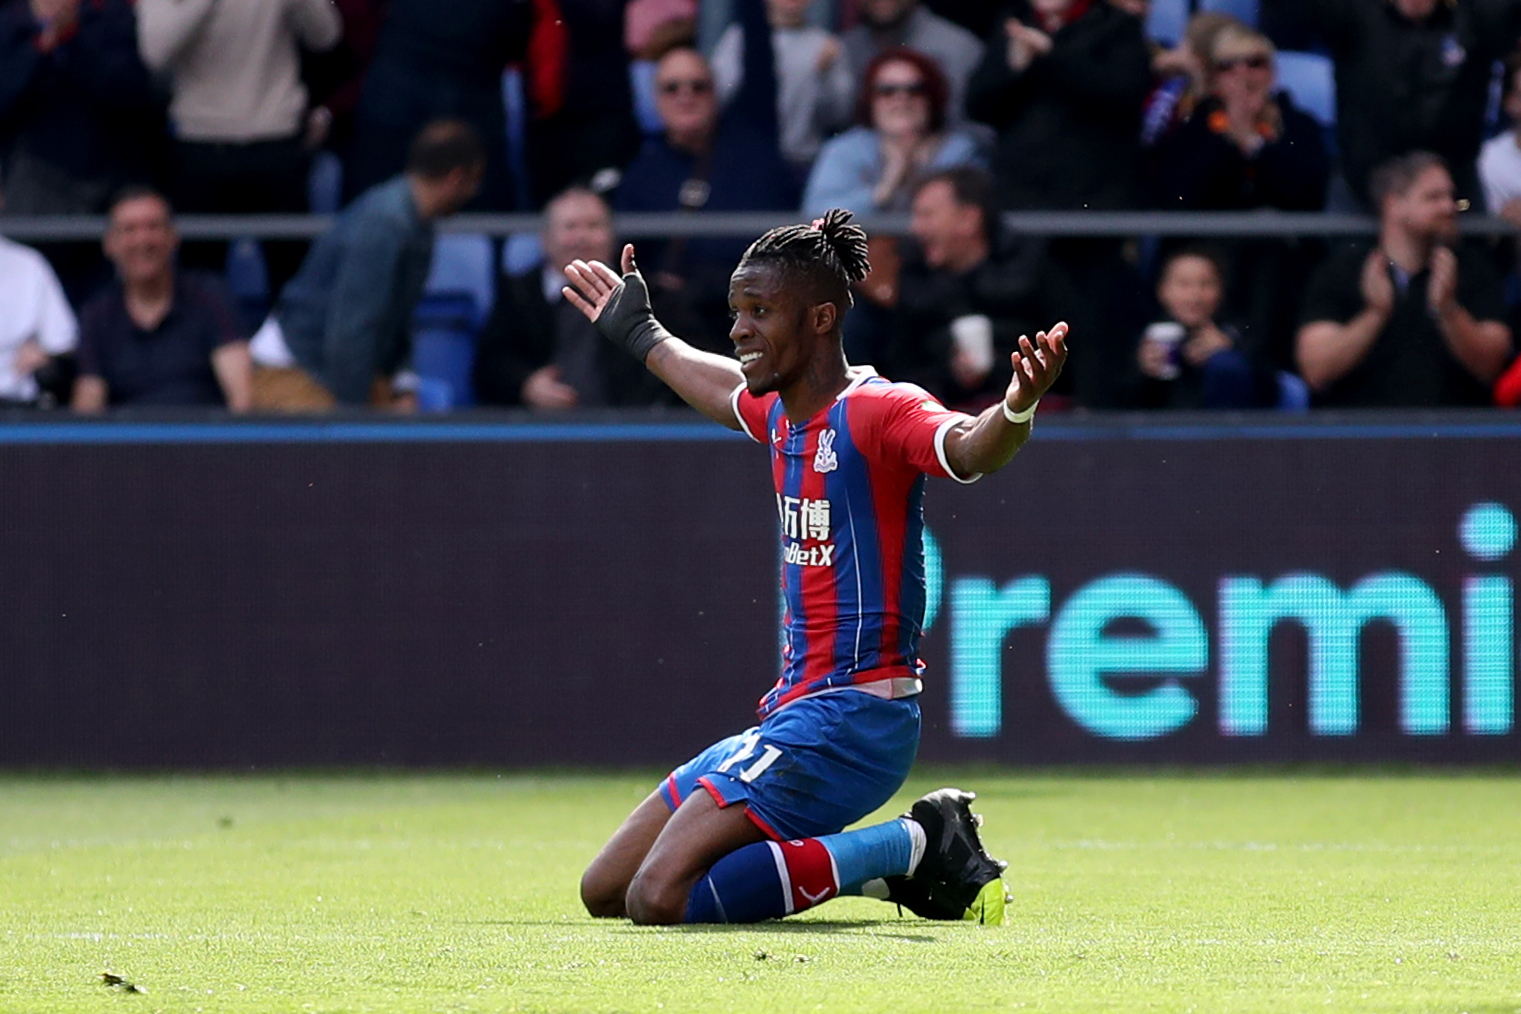 Player ratings from Palace's 5-3 win over Bournemouth - 9 or a 10?